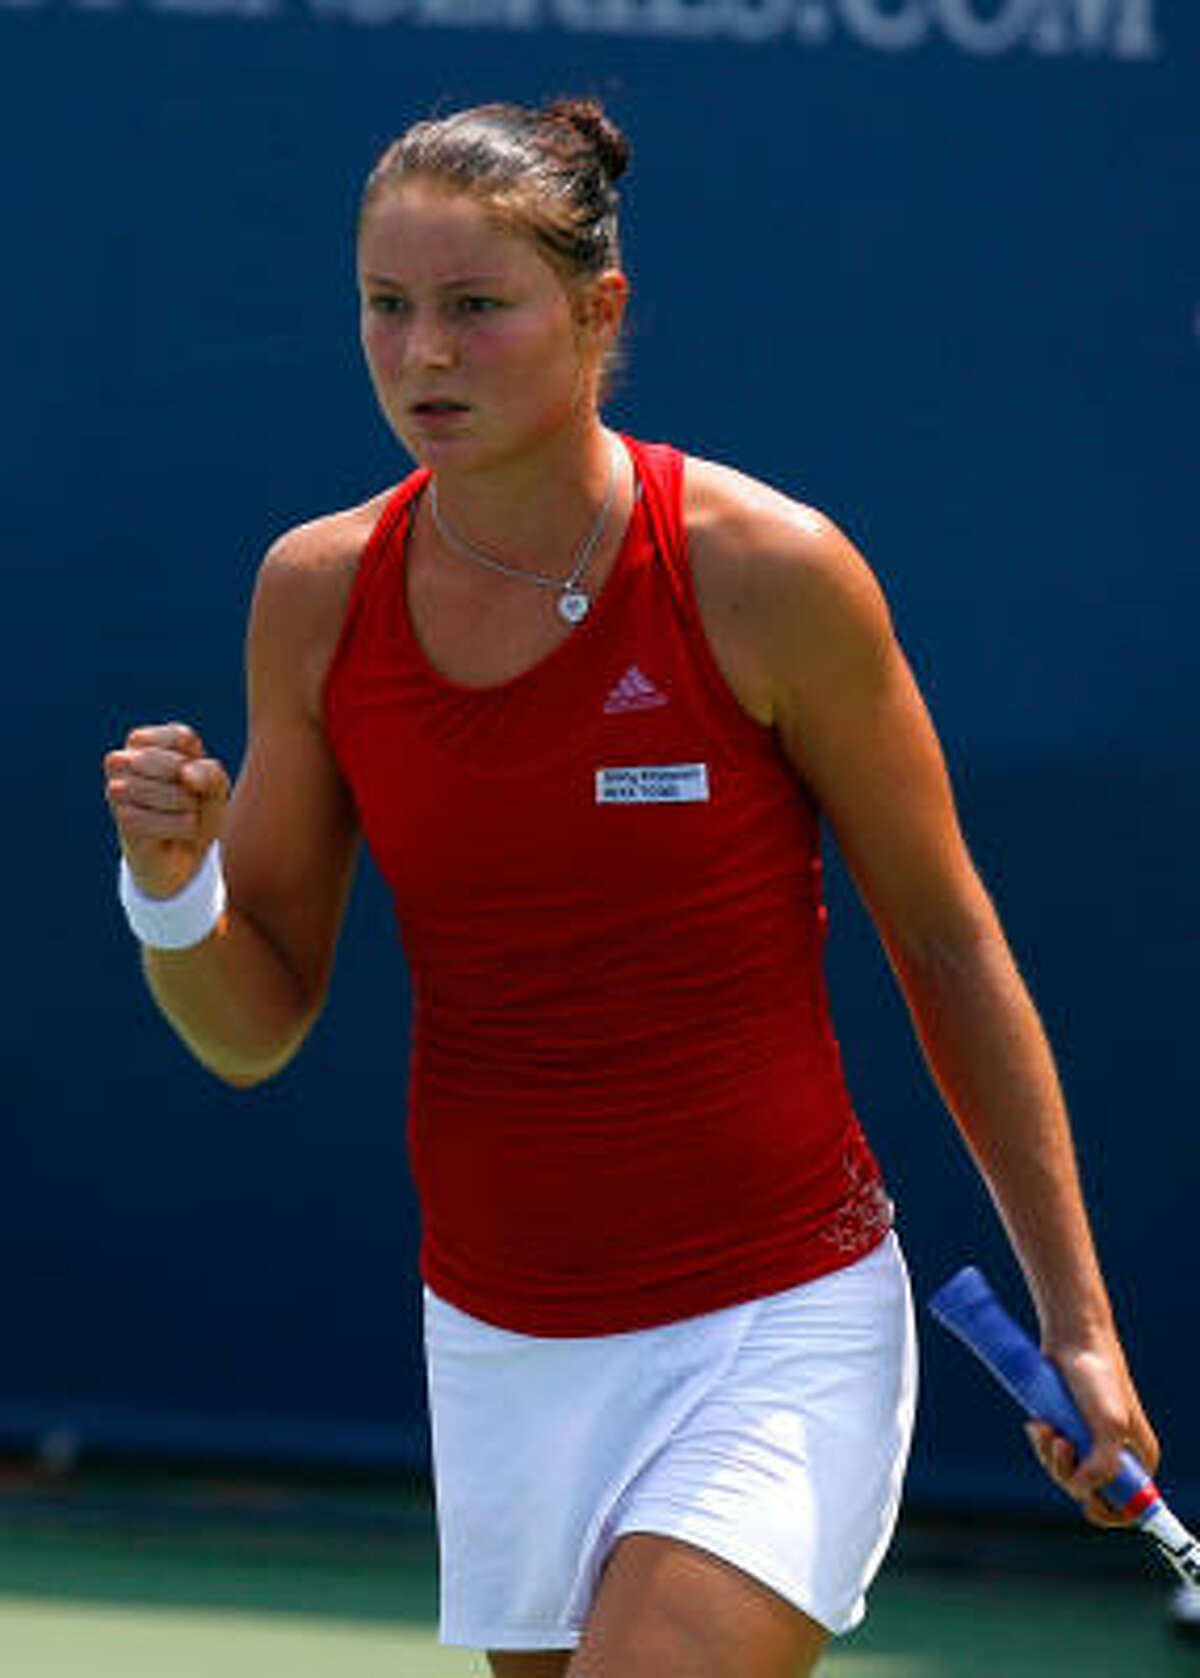 Dinara Safina (1) Age: 23 Country: Russia 2009 Match Record: 52-12 2009 Singles Titles: 3 Career Singles Titles: 12 Major Titles: 0 Last 5 U.S. Opens: '08-Lost in Semifinals, '07-4th, '06-QF, '05-1st, '04-1st Comment: Runner-up at three of the past six Grand Slam tournaments but still searching for her first major championship. ... One of four Russians seeded in top seven at U.S. Open. ... Lost 6-1, 6-0 in Wimbledon semifinals to Venus Williams. ... Has acknowledged faltering because she feels pressure in latter stages of major events.